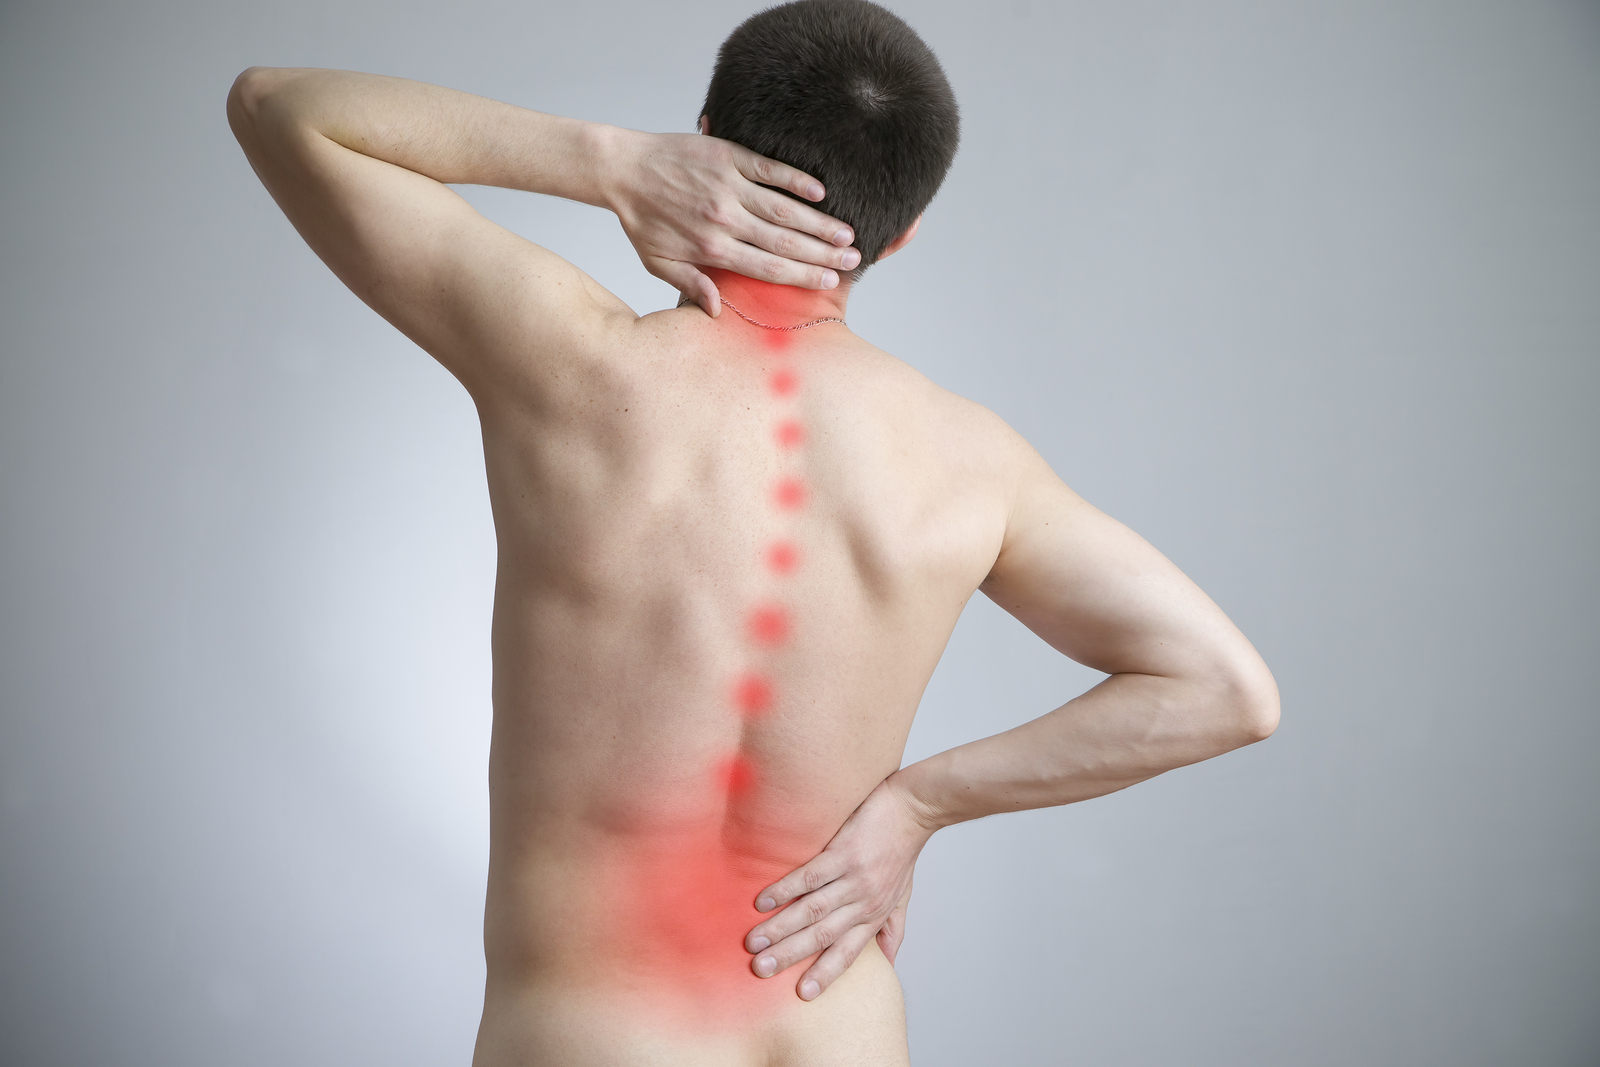 Physical Therapy Services in Scarsdale, NY